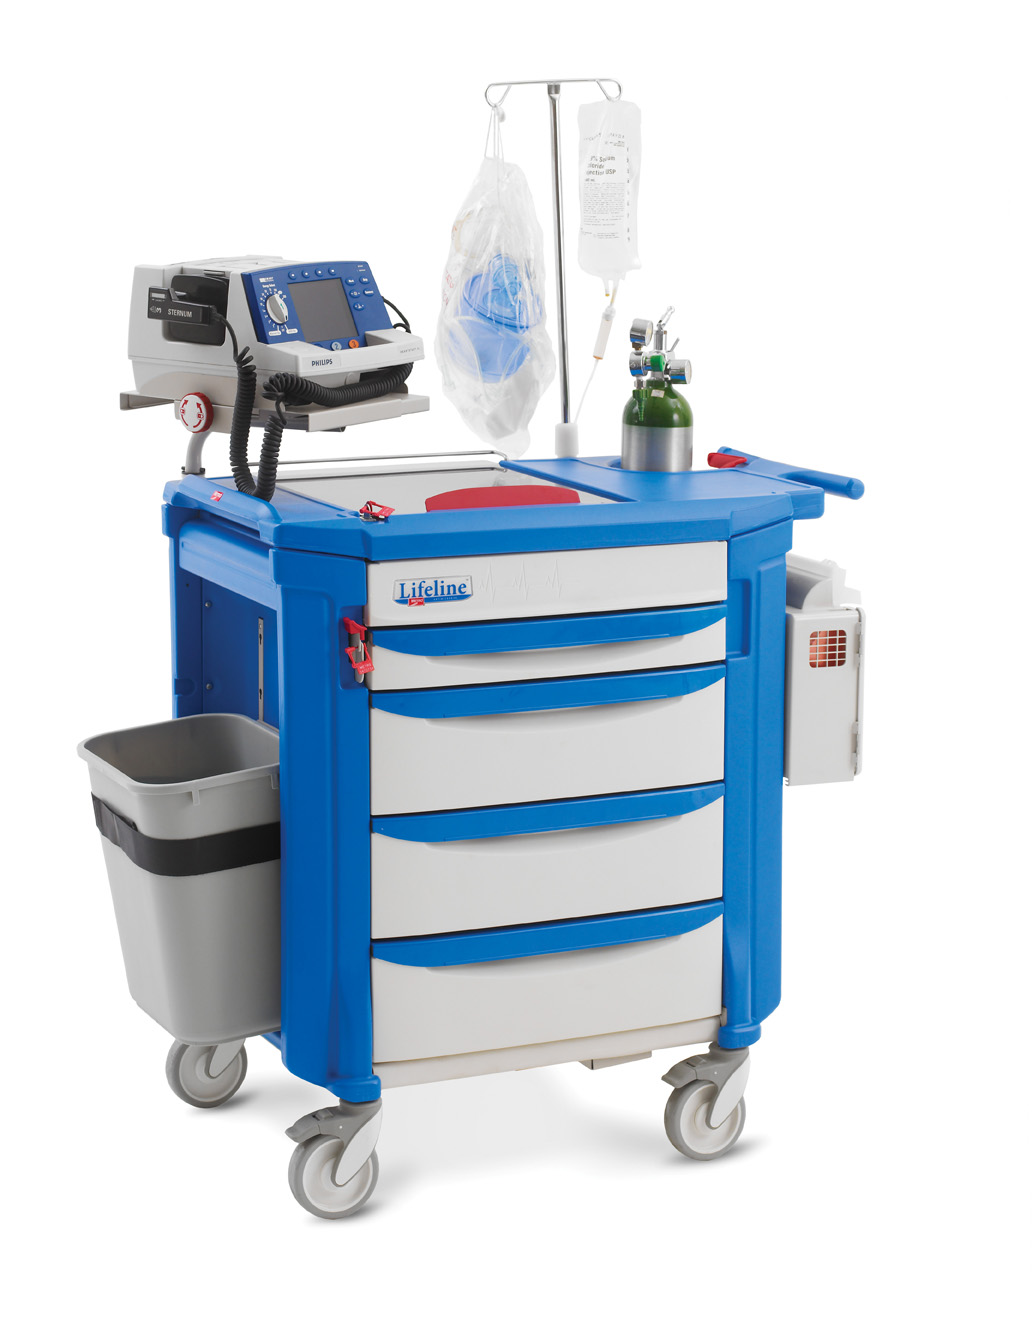 50192822 together with 433916556 additionally Drawer Accessories besides Hafifo together with 401308188897. on plastic storage cart with drawers